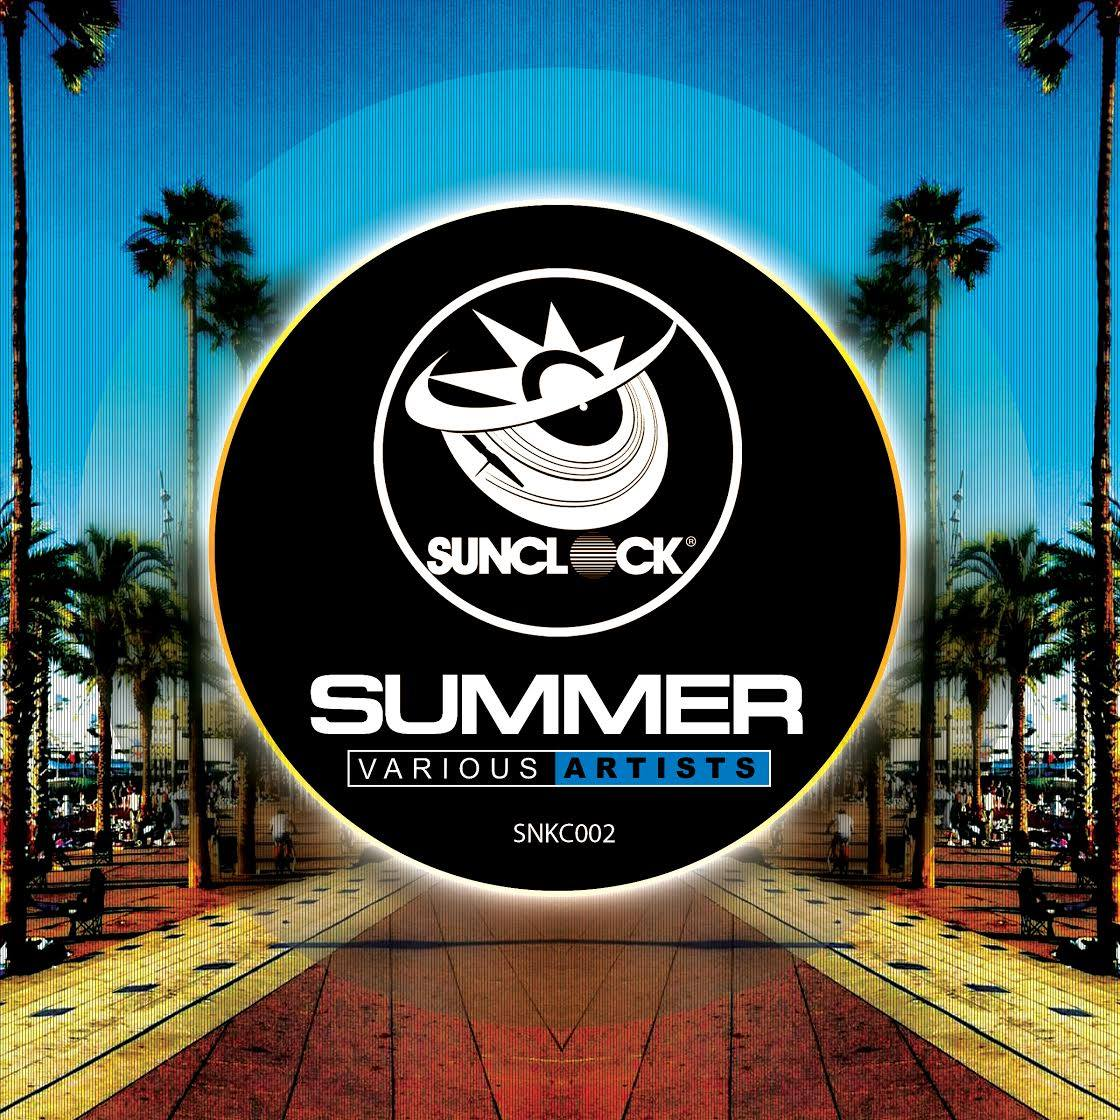 Various Artists - Summer - SNKC002 Cover